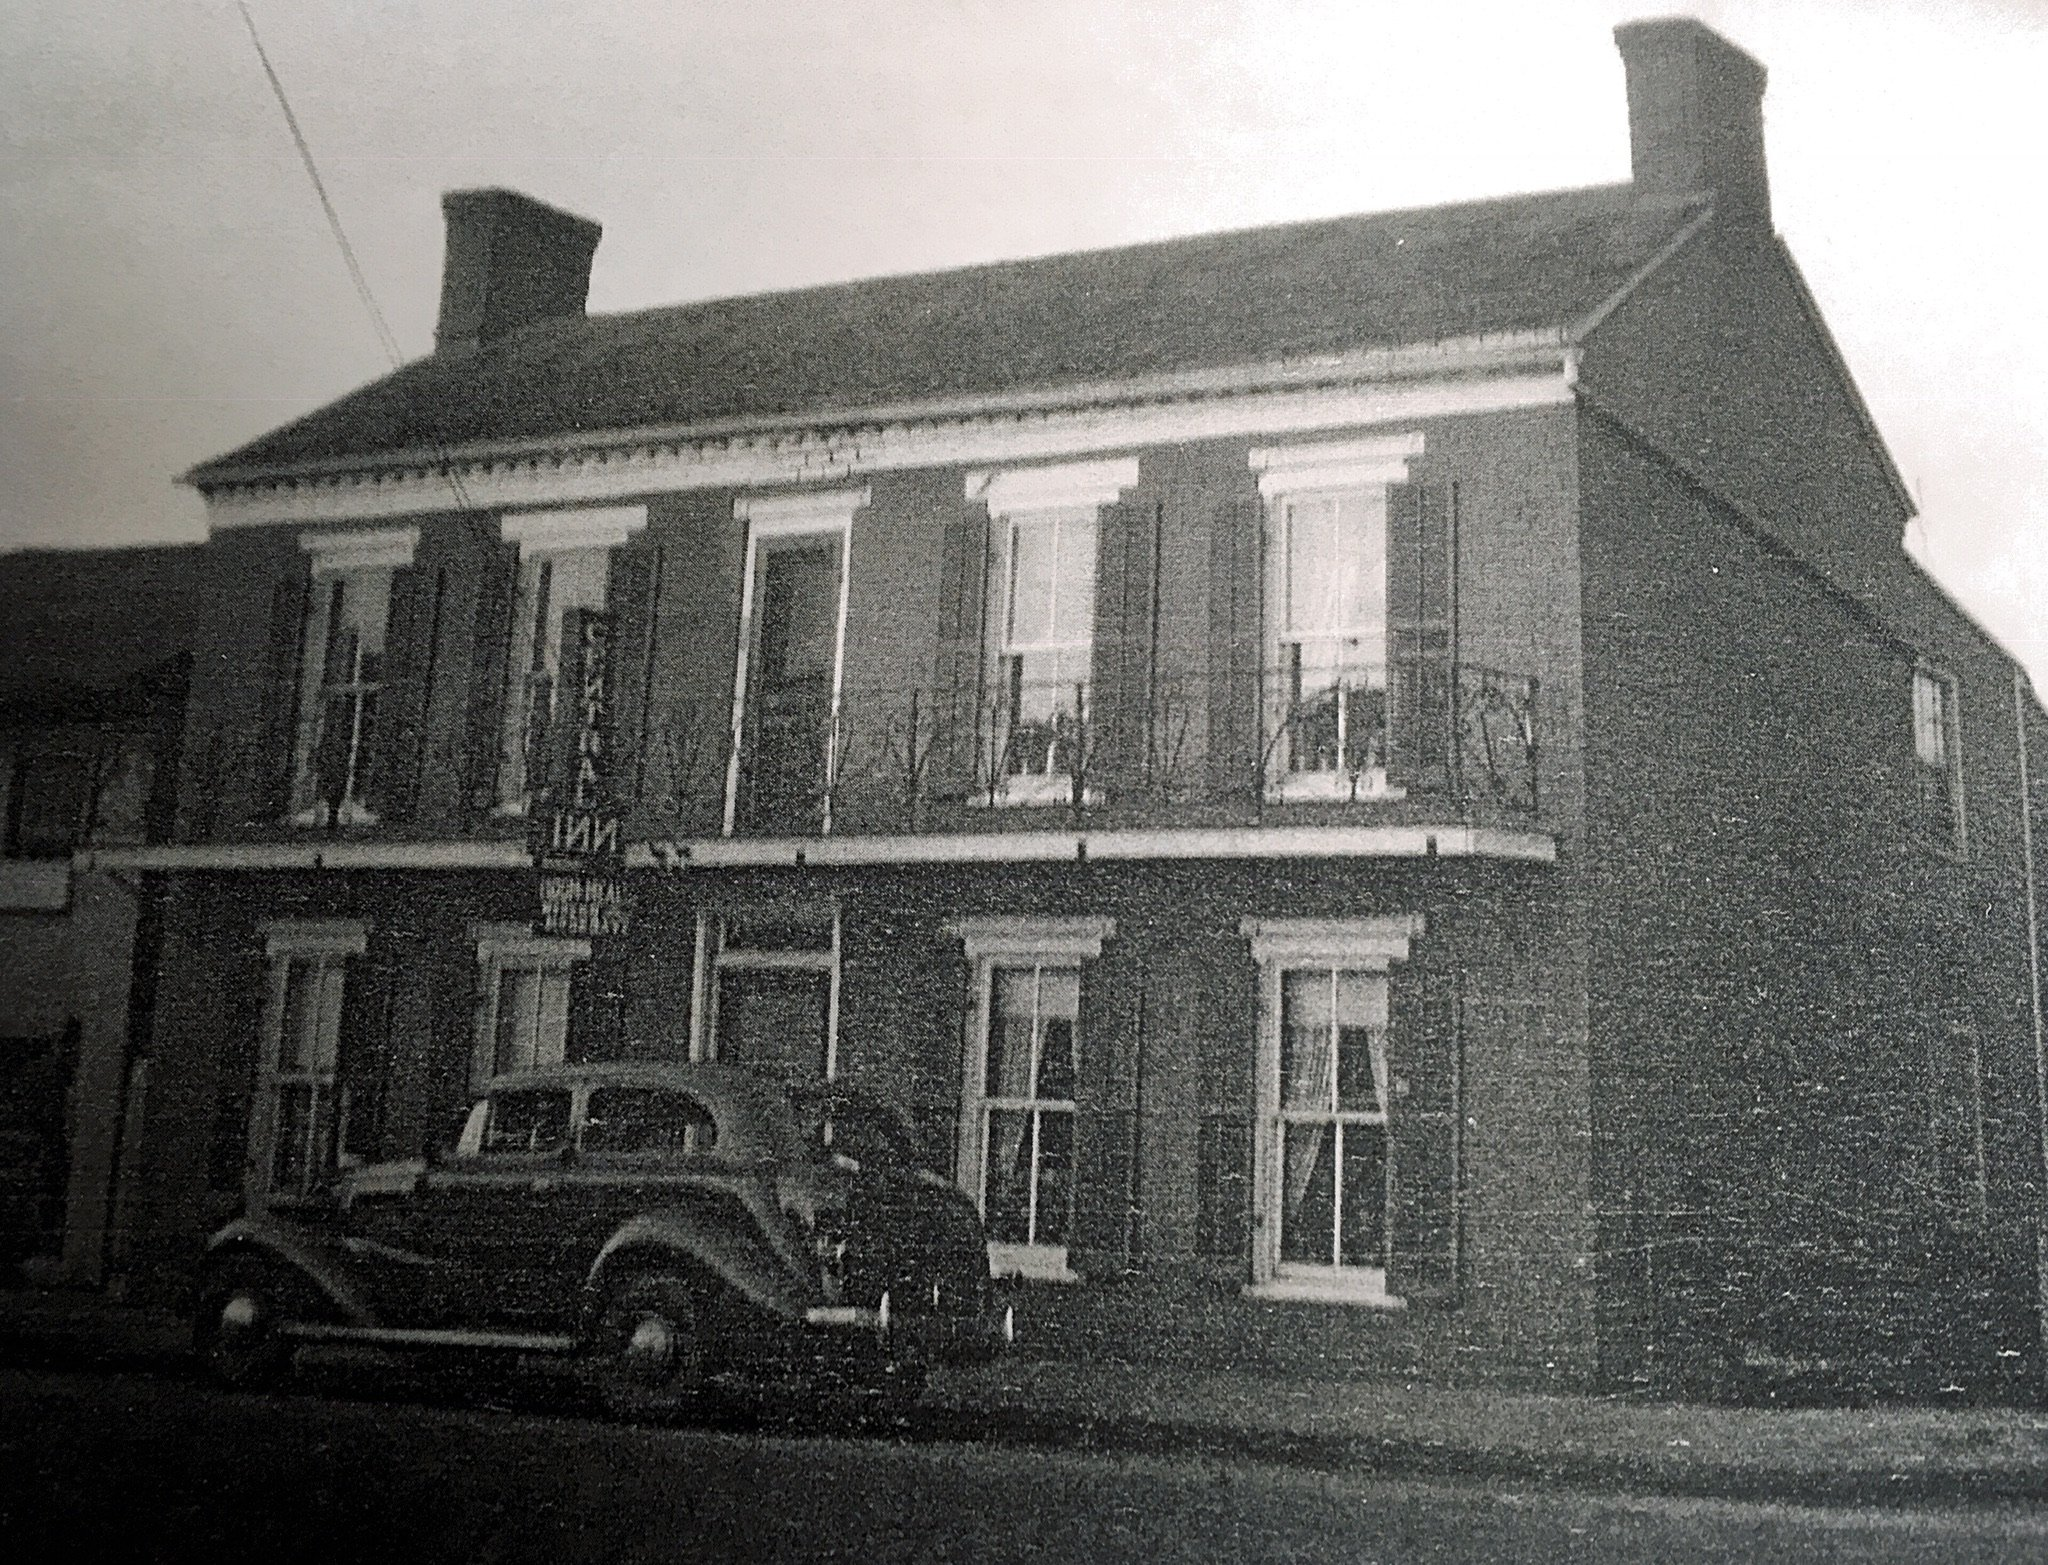 Central Inn showing the metal balcony. Photo courtesy of Greenbrier Historical Society.